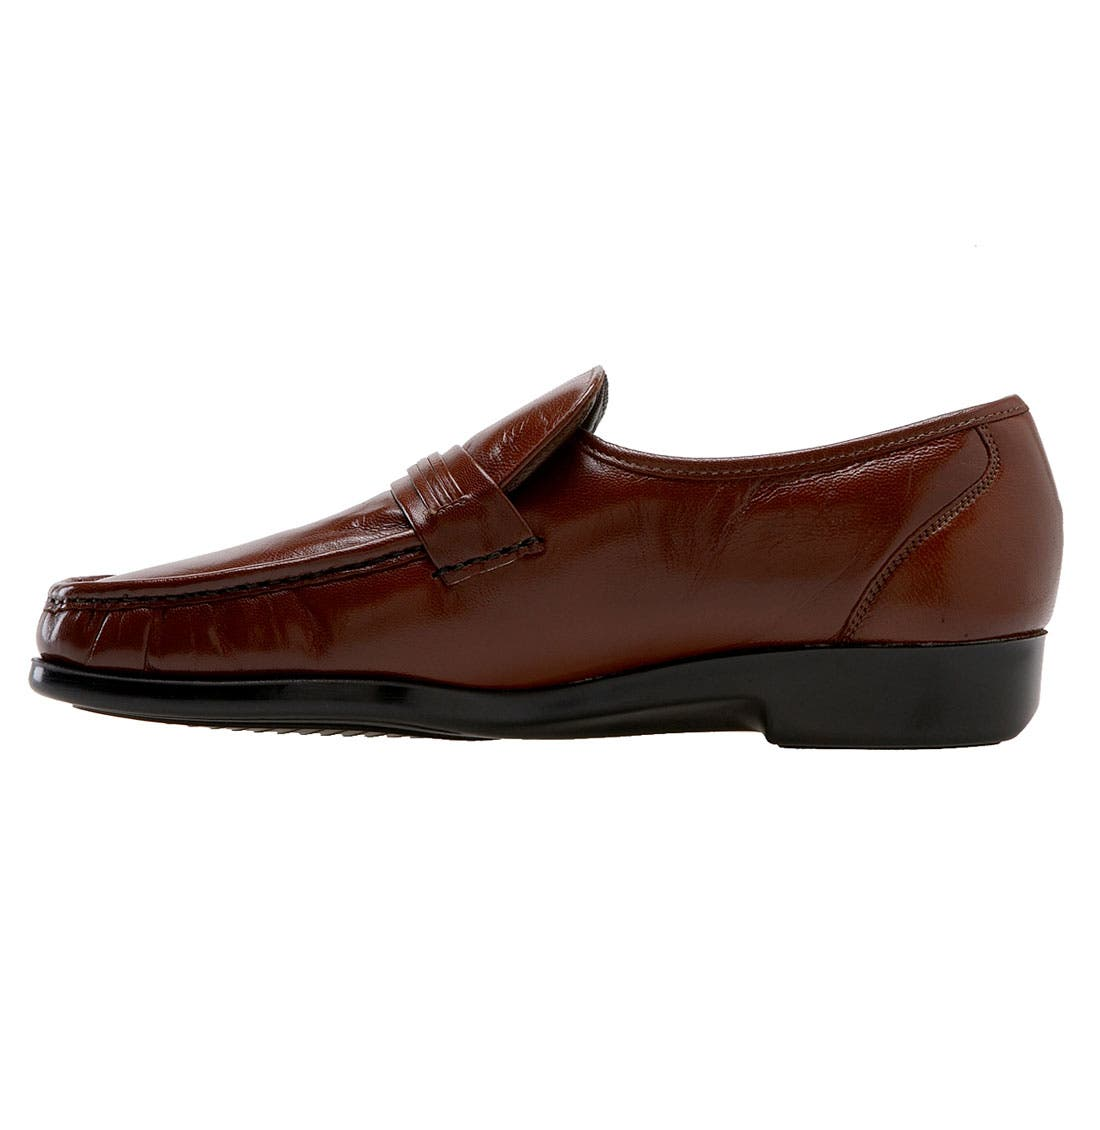 Alternate Image 3  - Florsheim 'Riva' Moccasin Slip-On